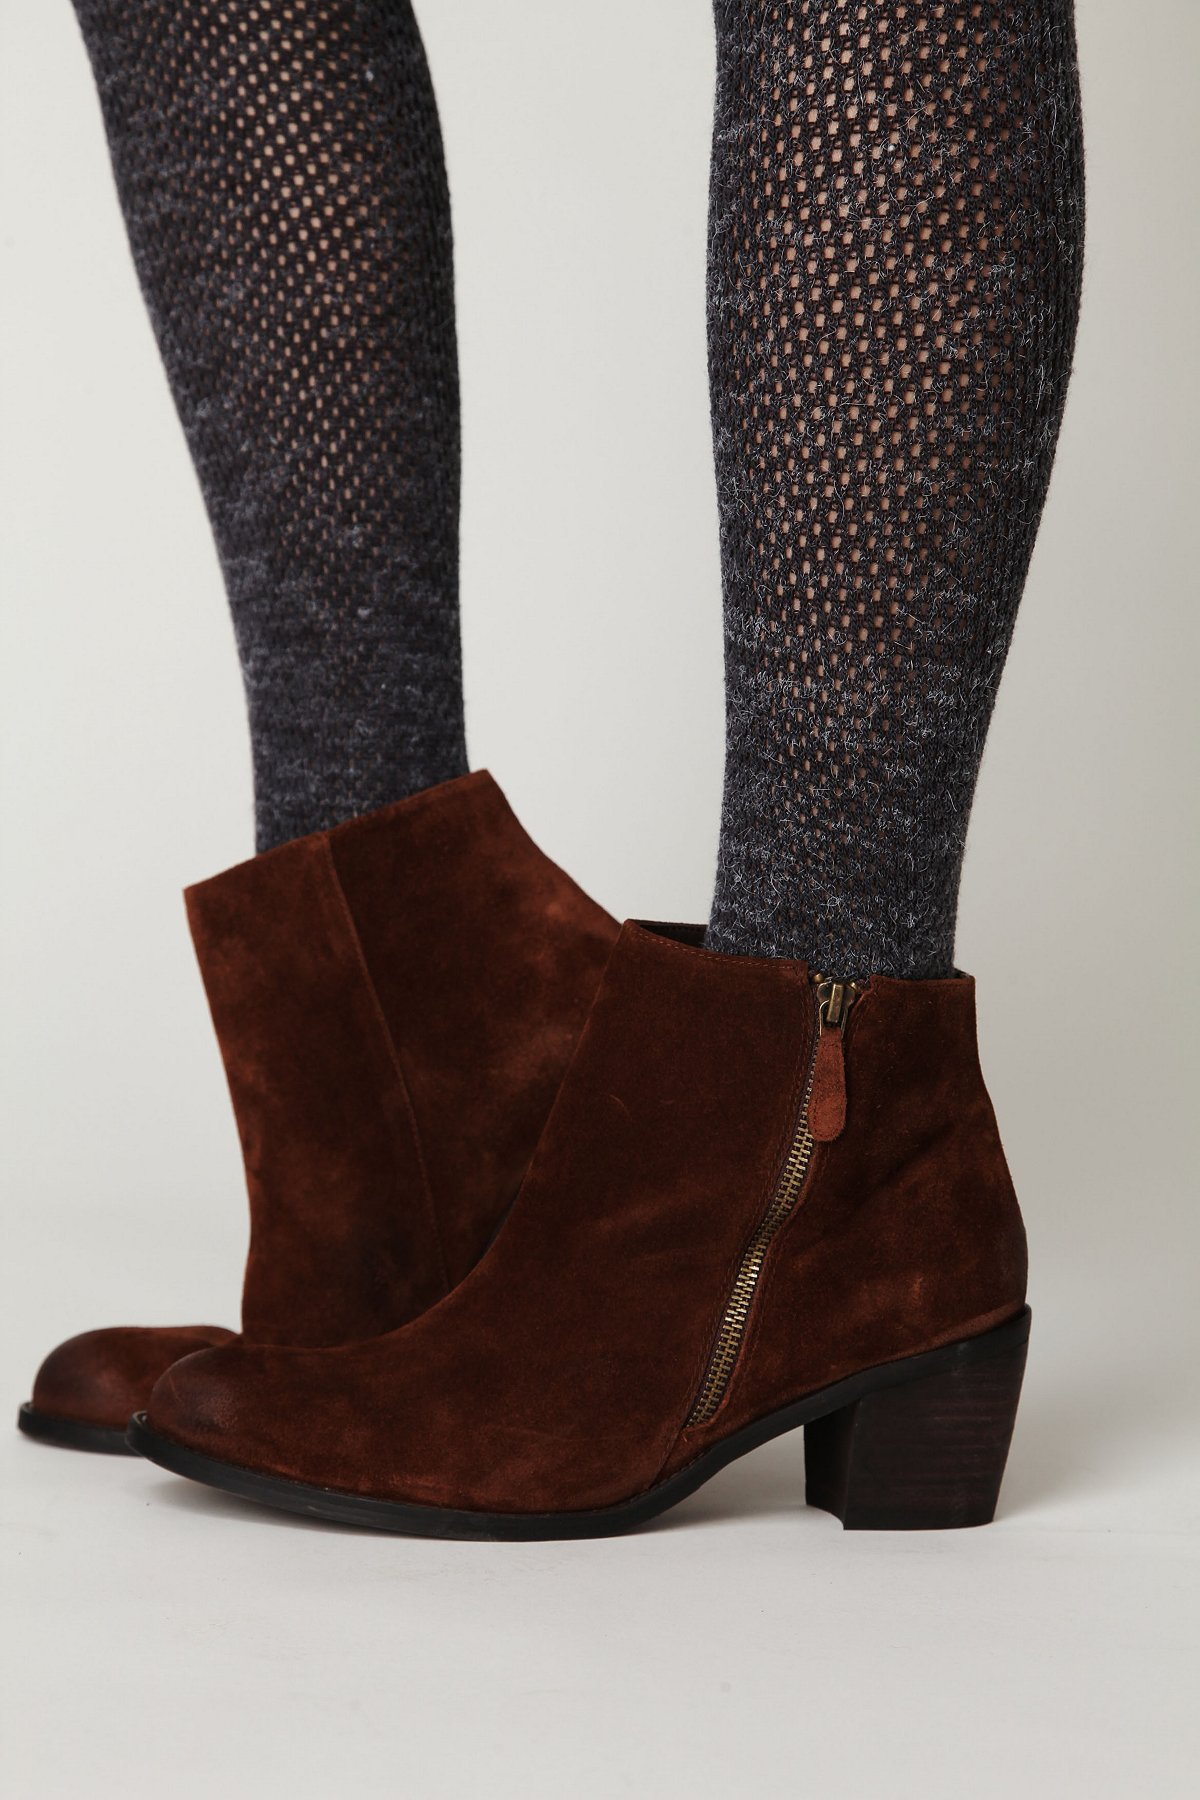 Presley Zip Ankle Boot